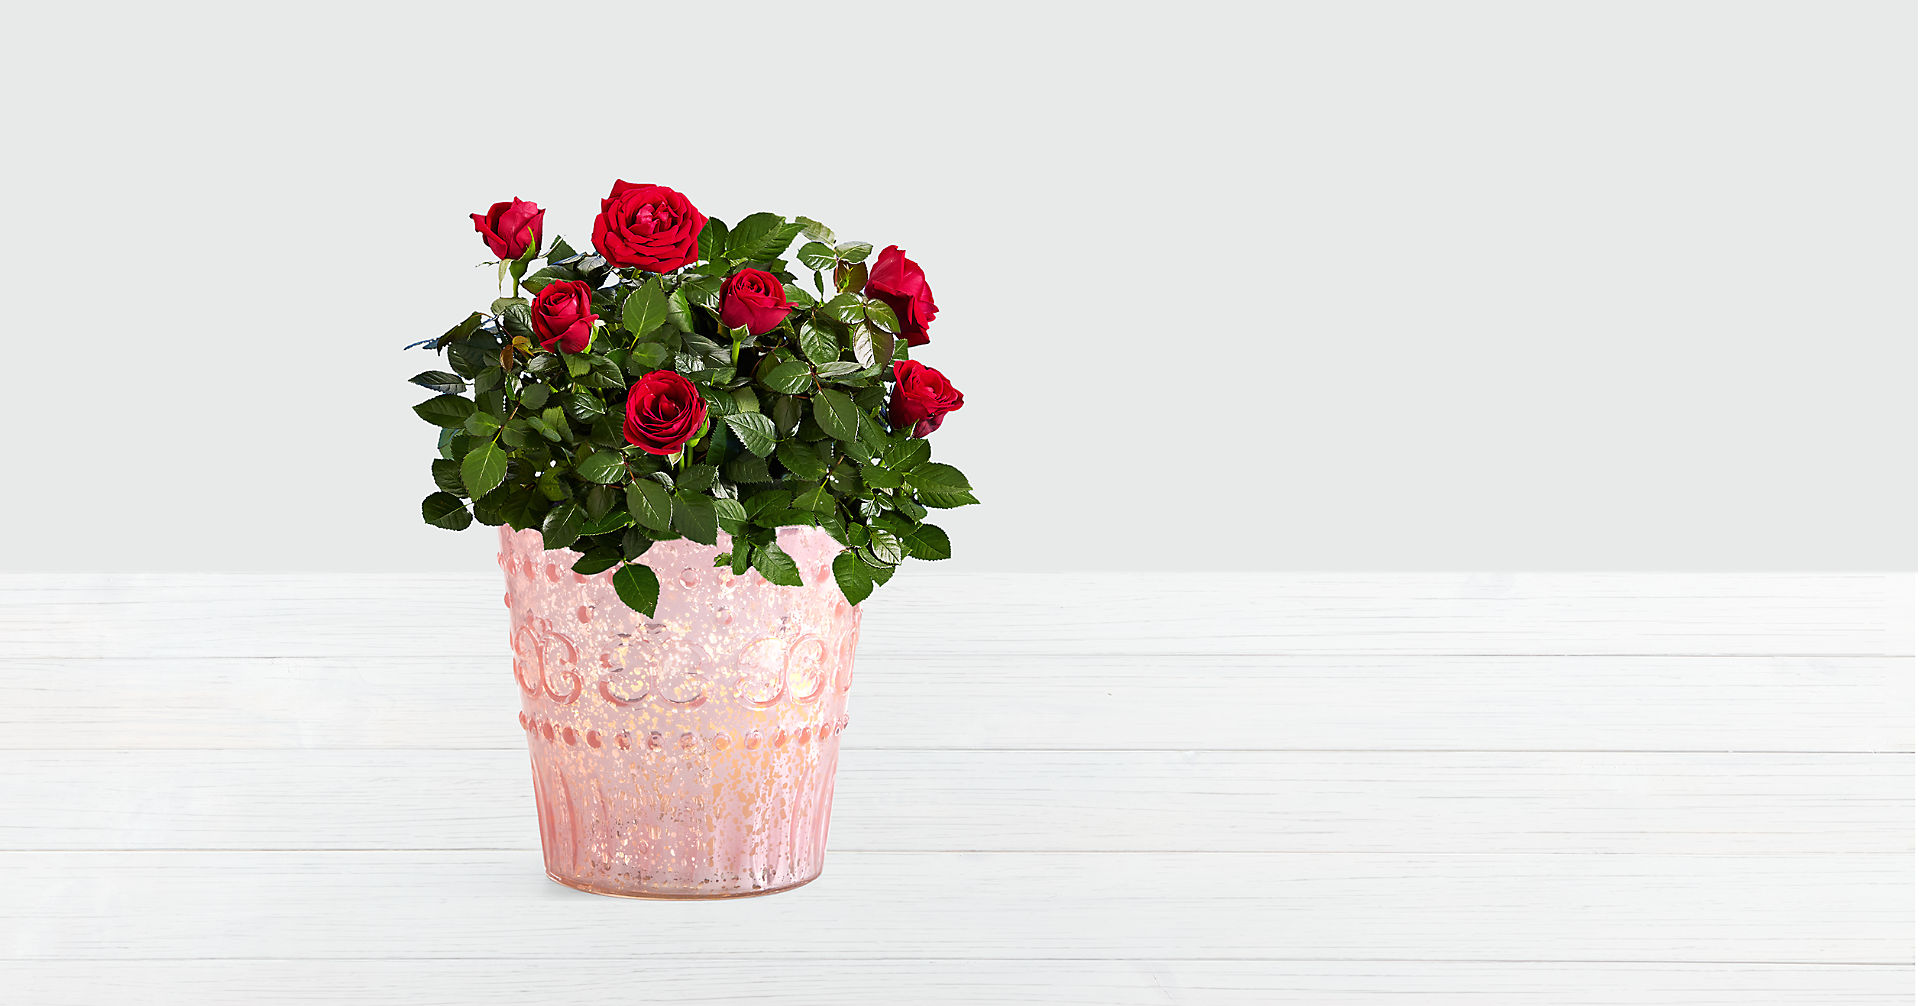 Potted Red Roses - Image 1 Of 2